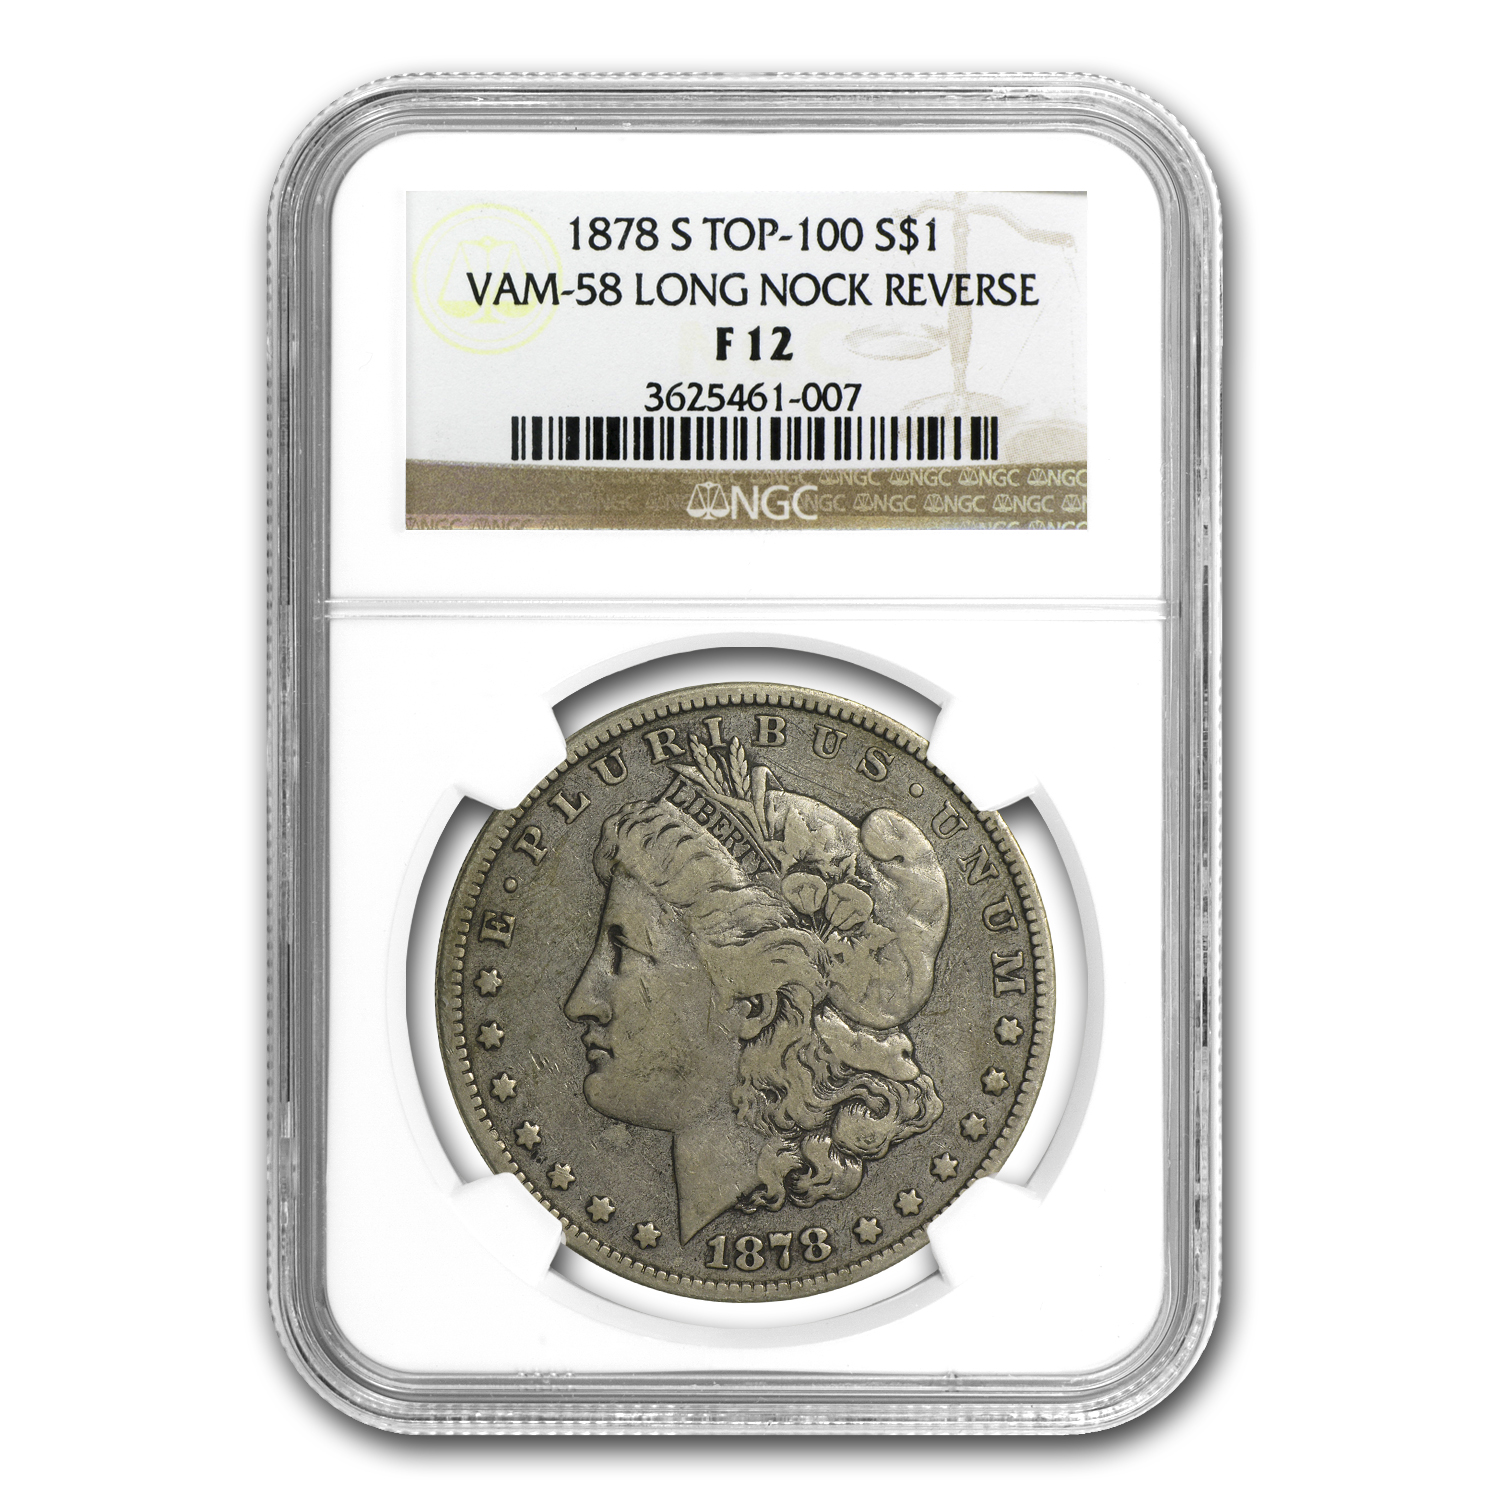 1878-S Morgan Dollar F-12 NGC VAM-58 Long Nock Reverse Top-100